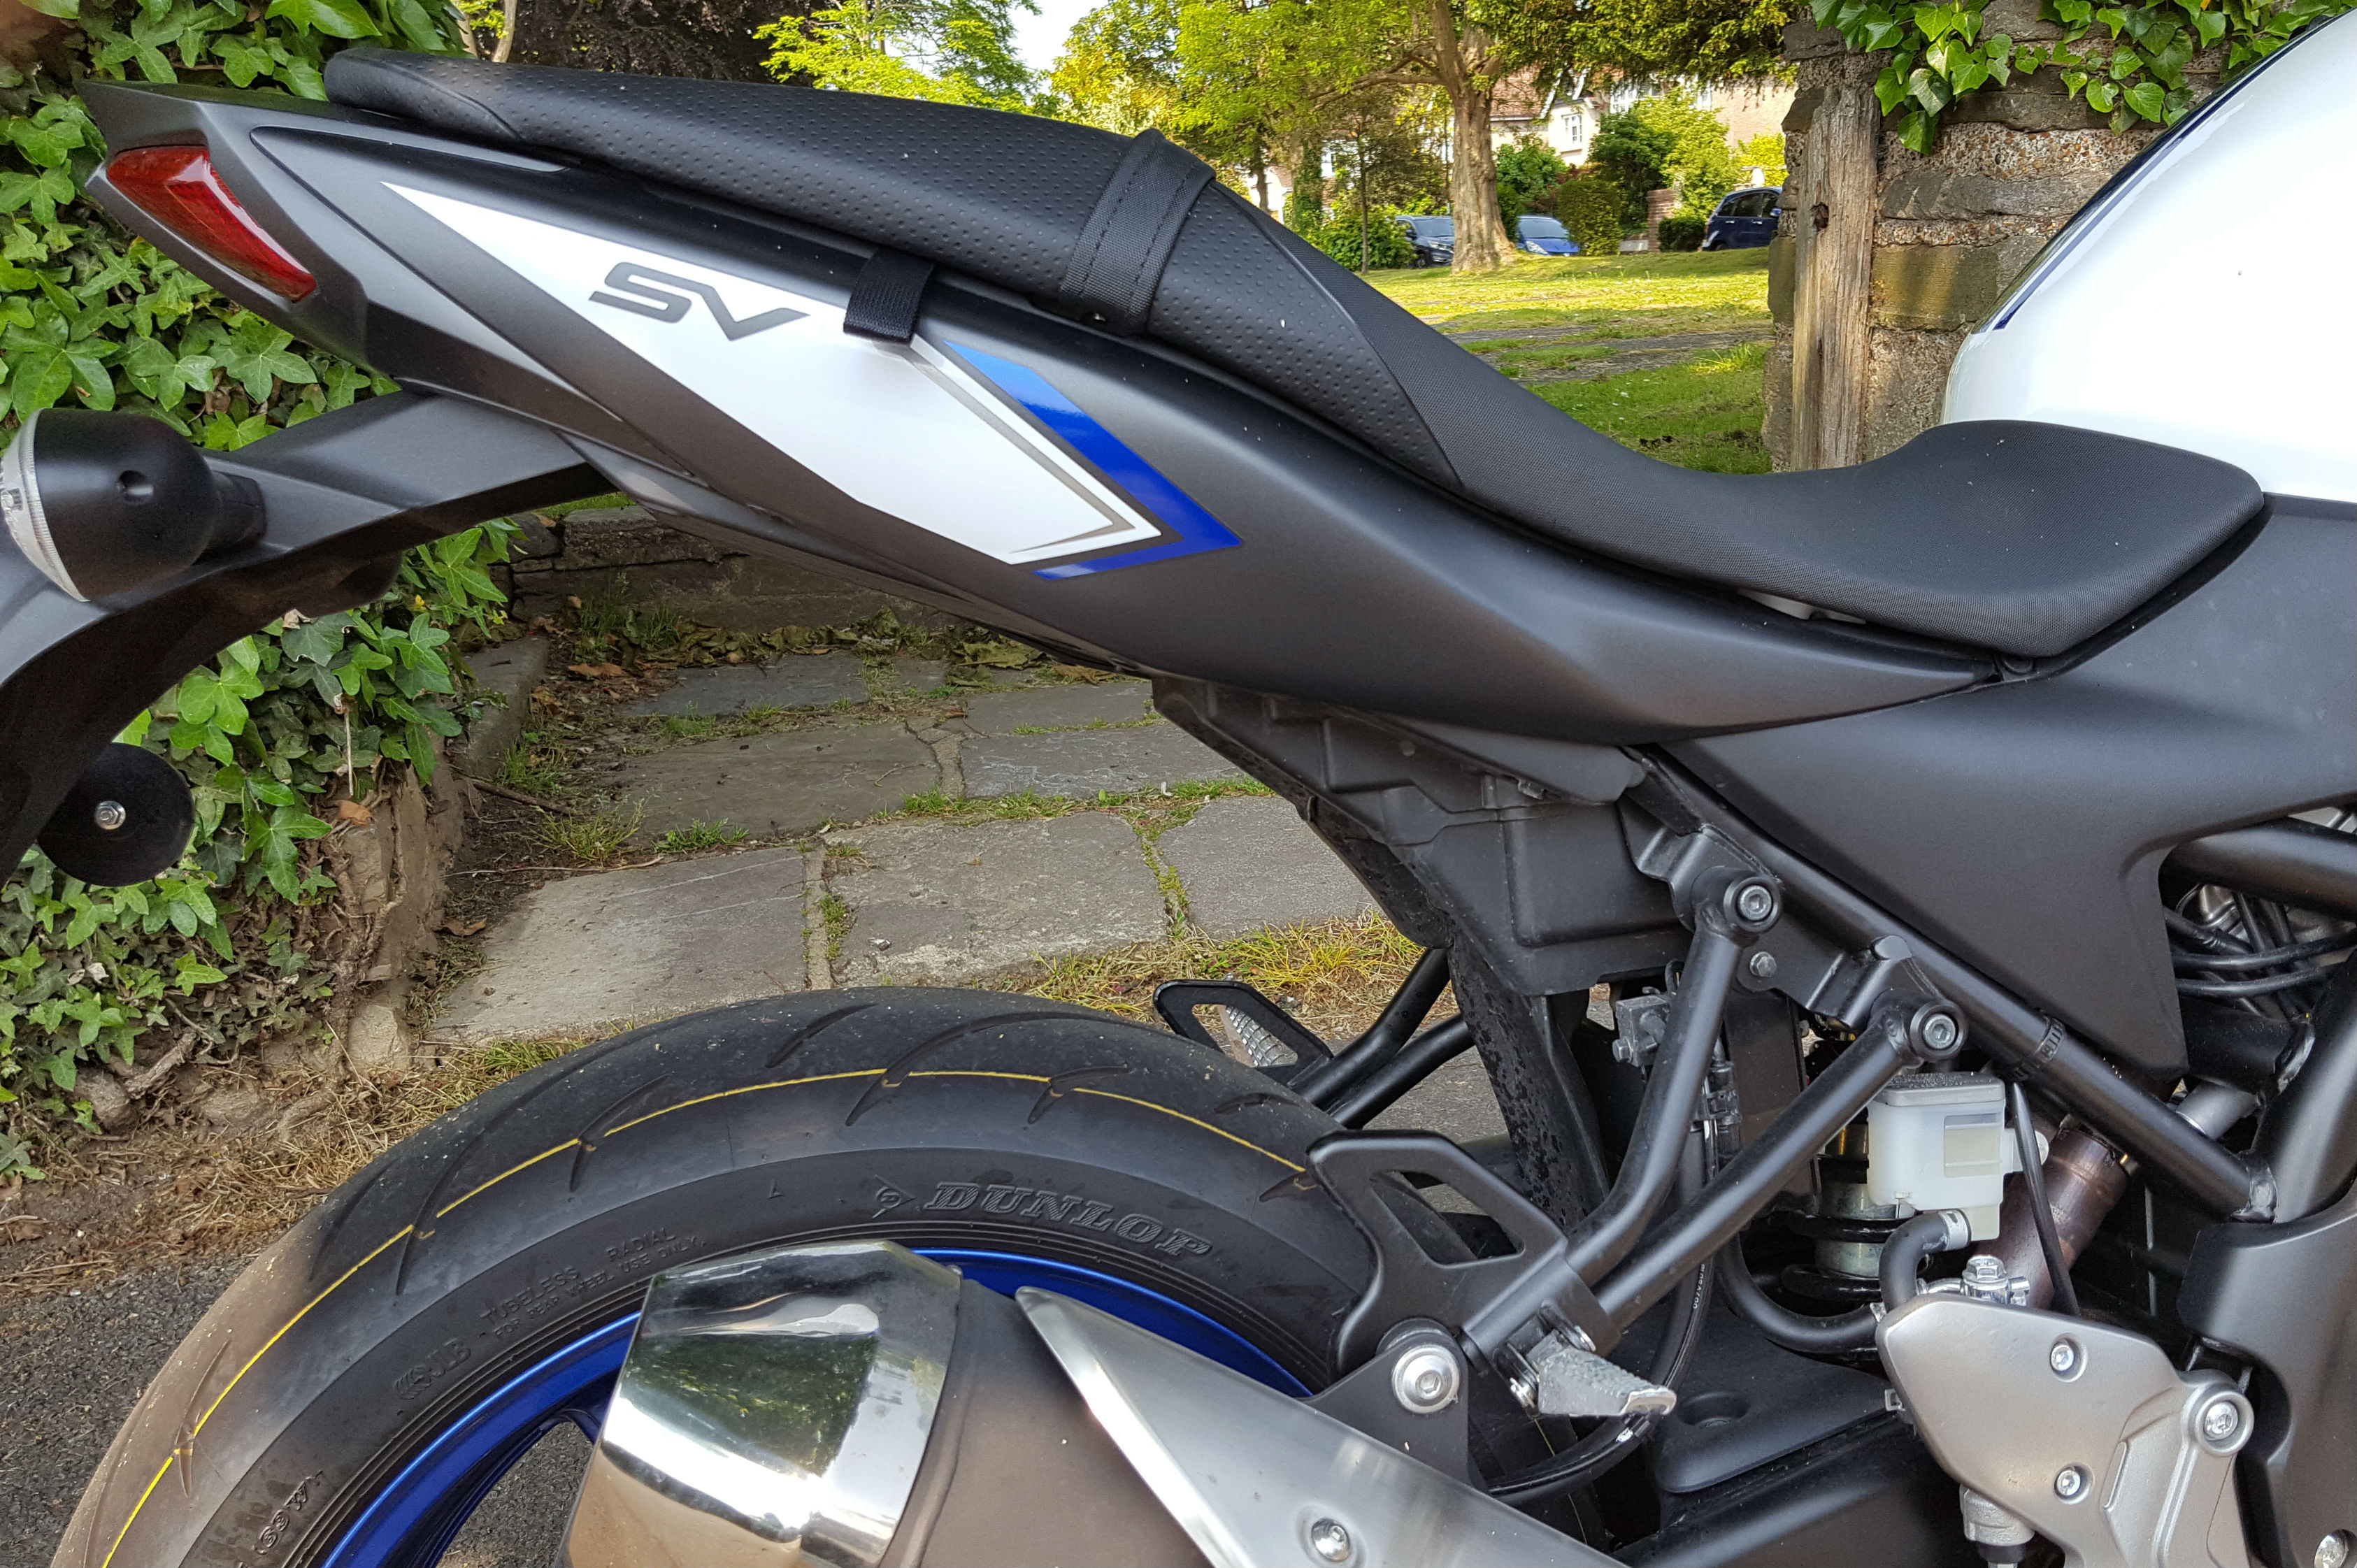 The Old SV Has A Much Bigger Space Under Pillion Seat With Two Hooks For Locking Helmets To New One Nowhere Secure Helmet